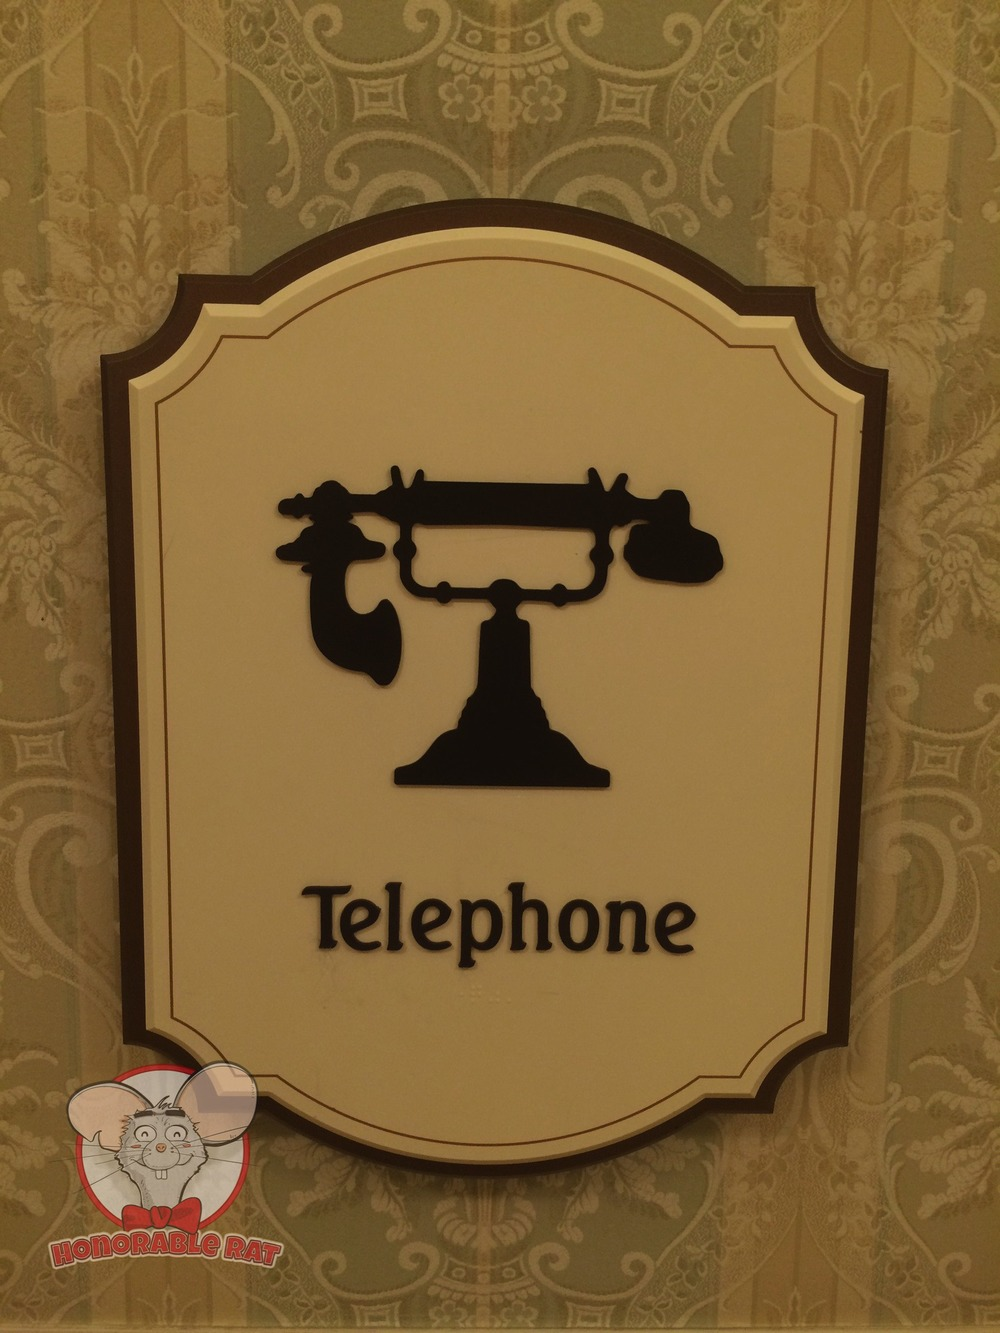 Look for this sign in Disney Hotels to find the source of power that will resurrect your dead phone